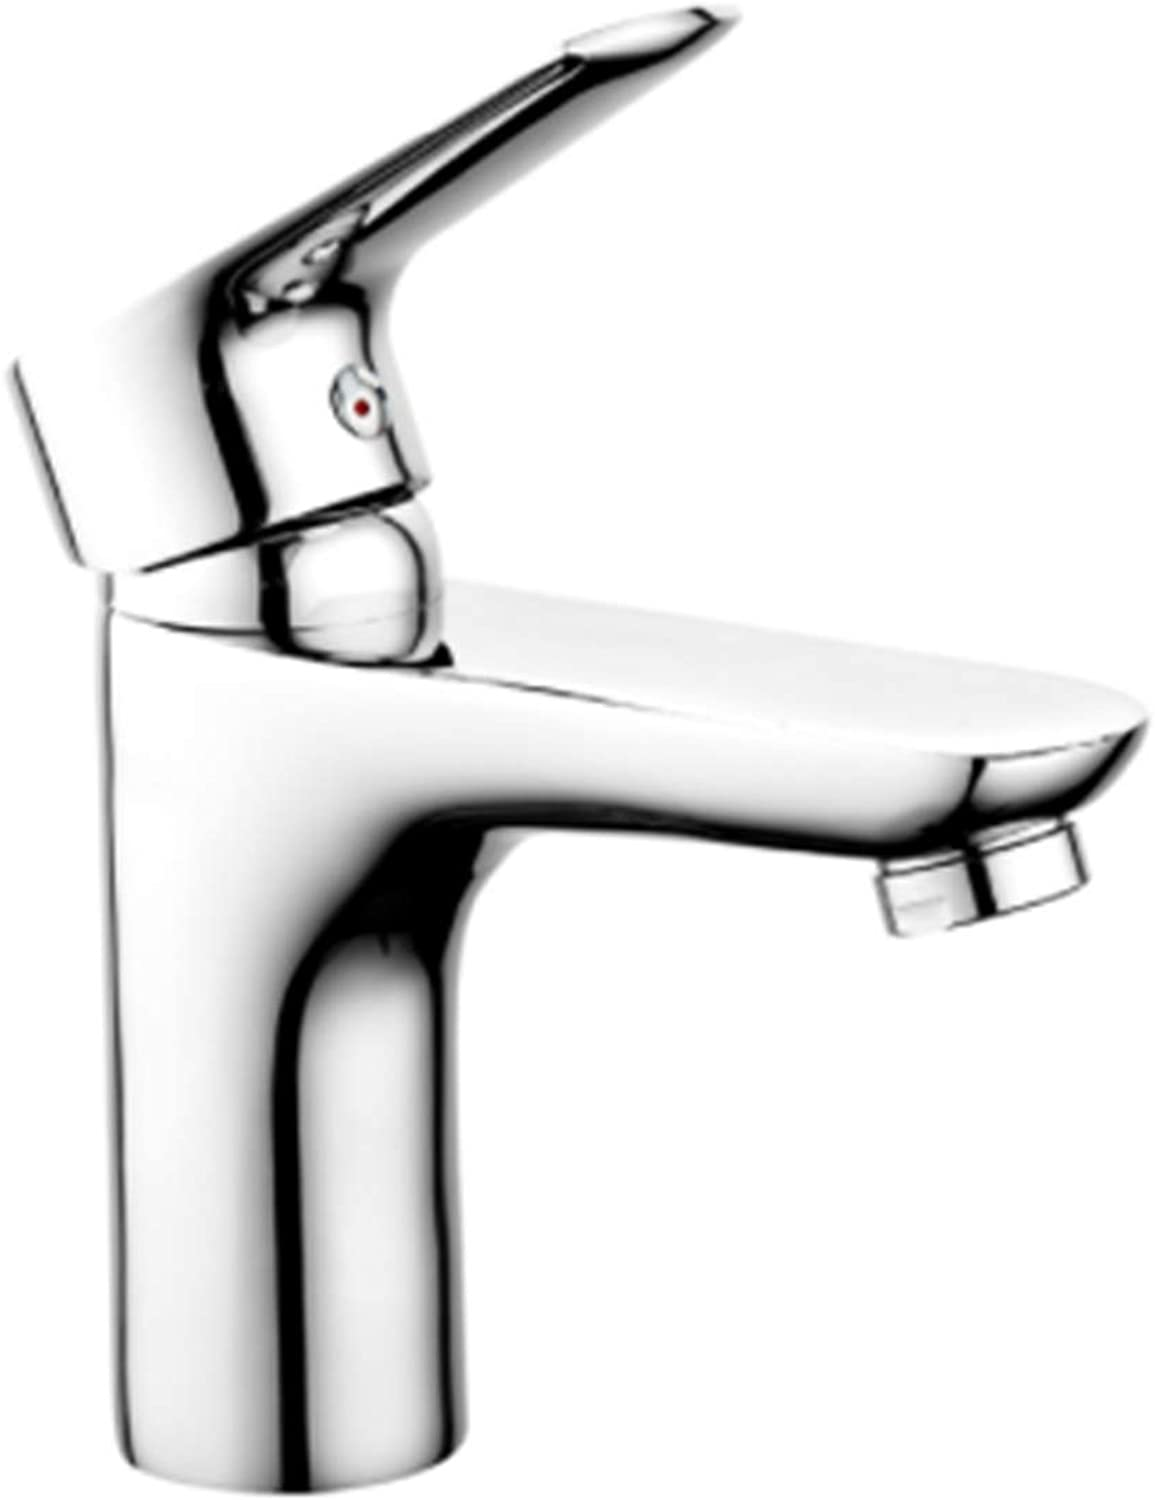 Taps Kitchen Basin Bathroom Washroomhigh Quality Water Tap Basin Sink Faucet Classic Bathroom Basin Faucet Single Hole Faucet Waterfall Toilet Basin Tap